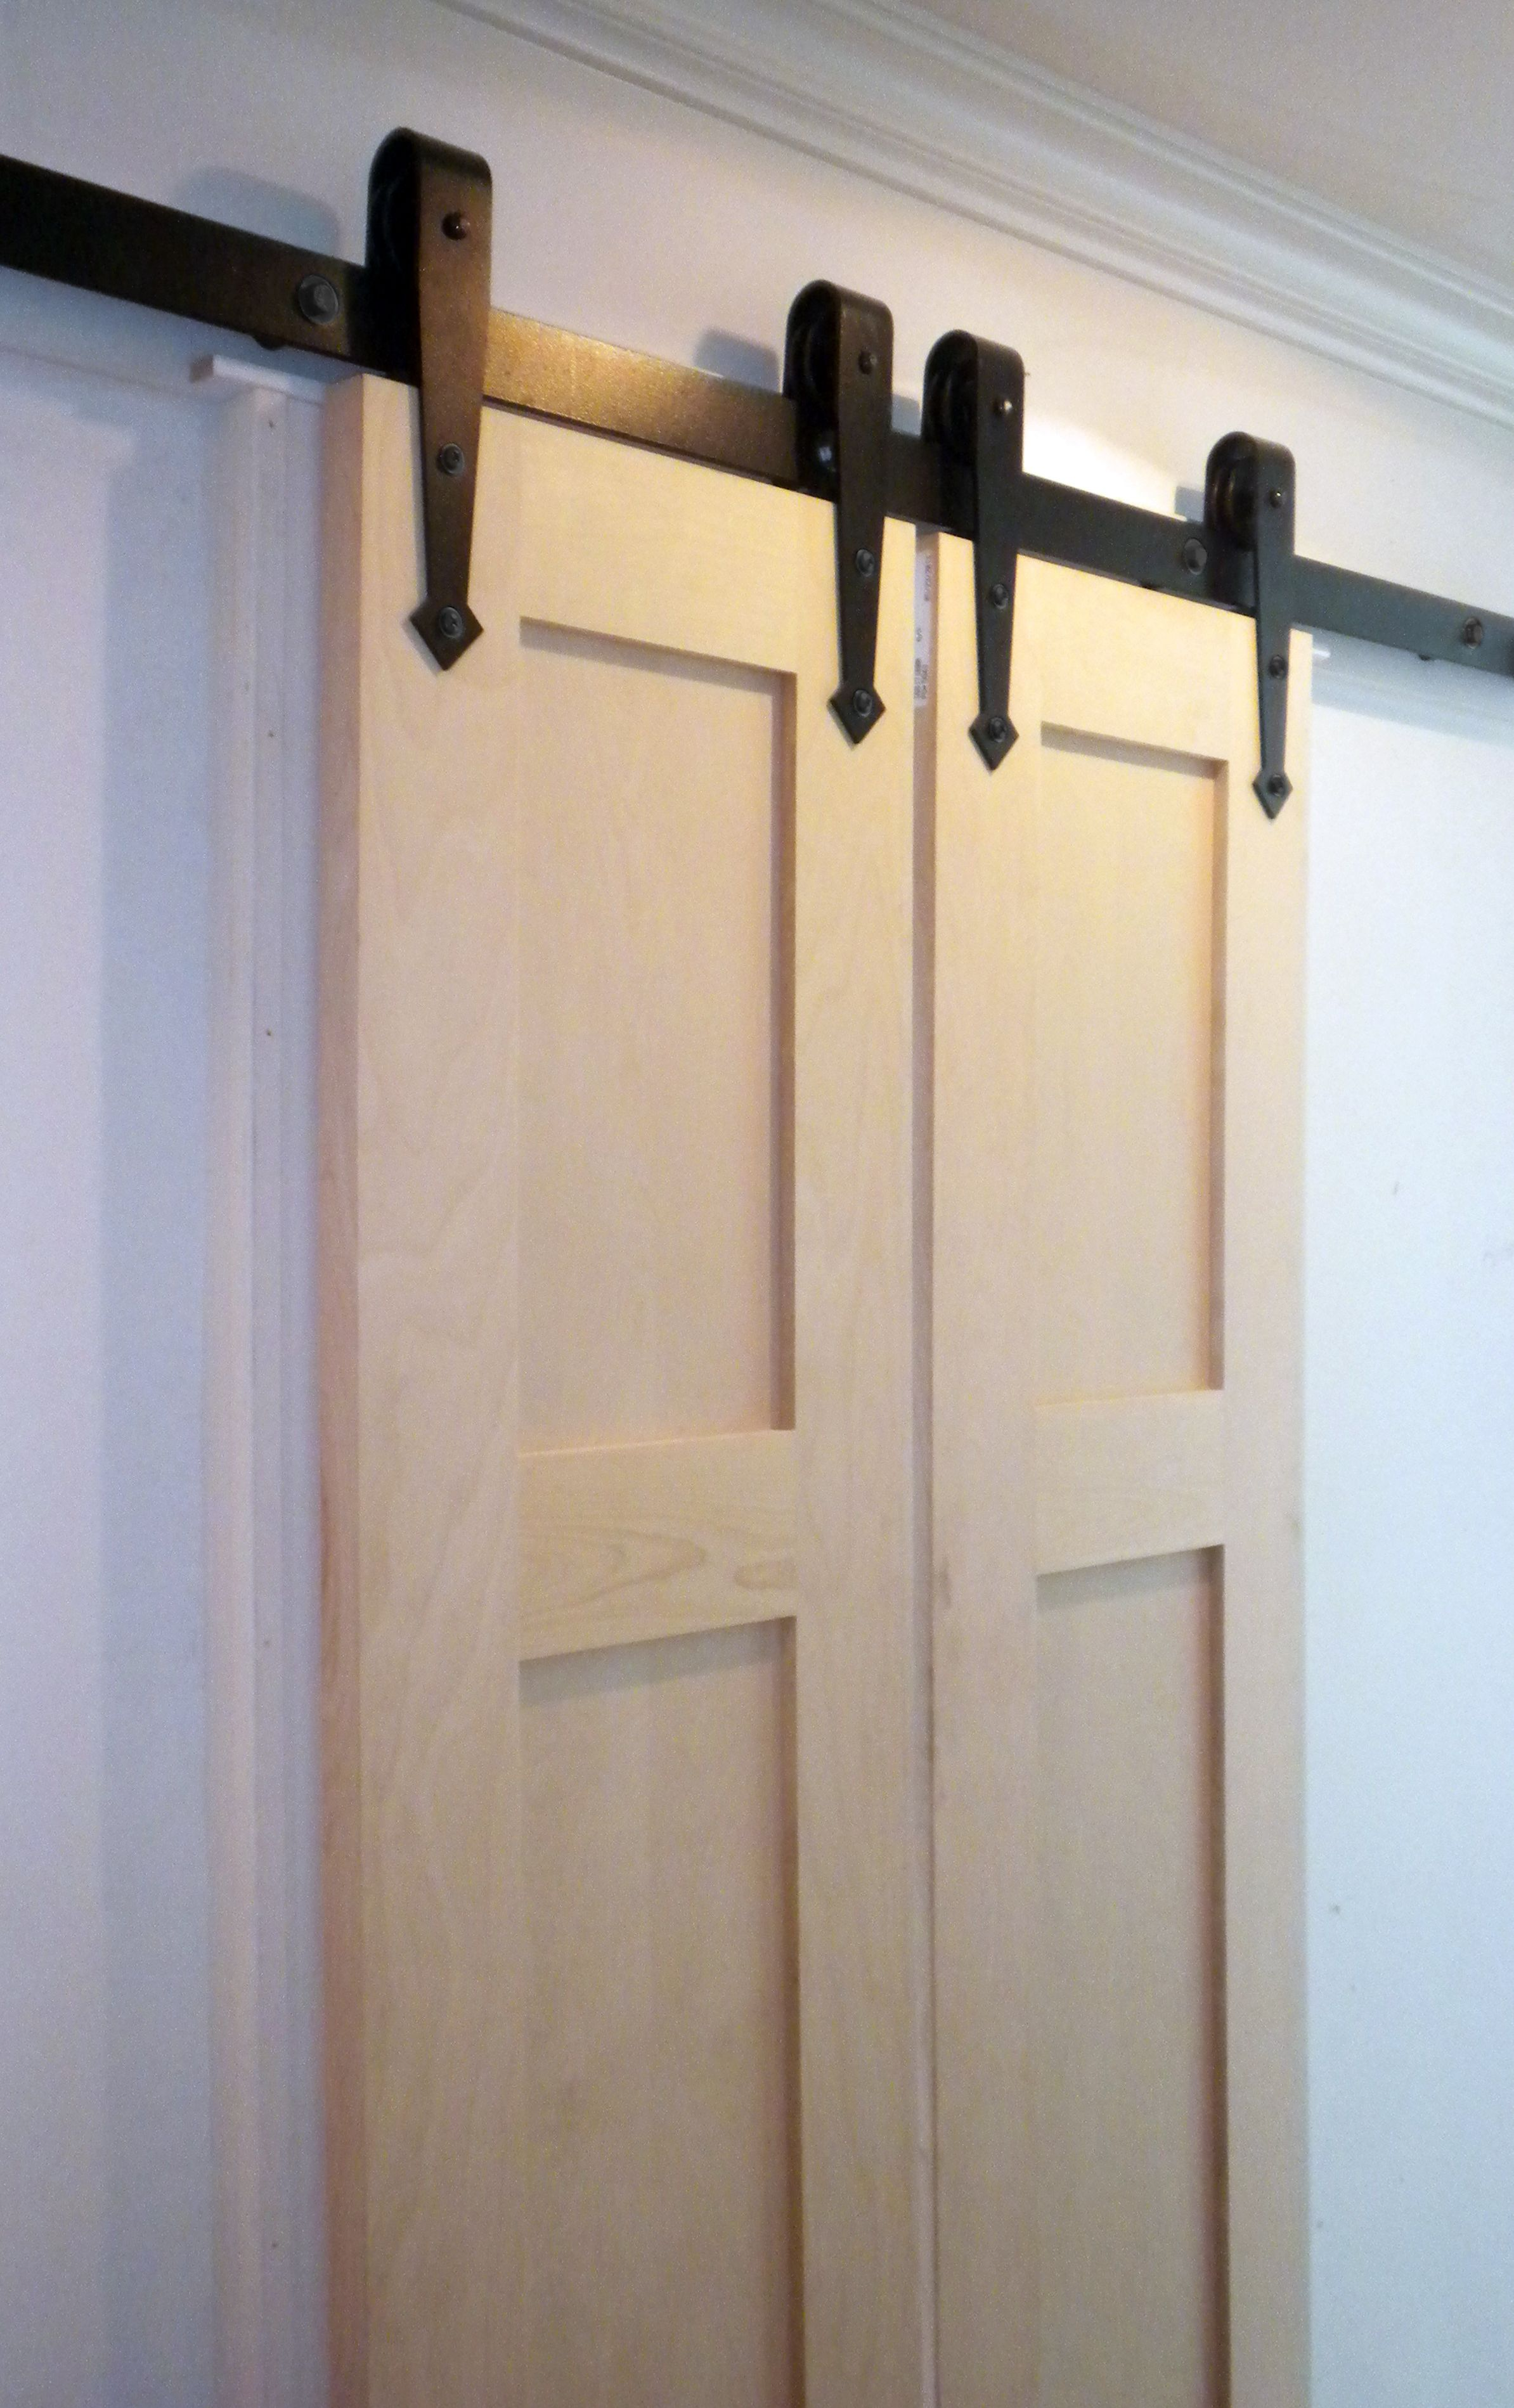 Professional Builder Uses Antique Style Box Track And Hangers For This Craftsman Home Interior Exterior Doors Craftsman House Door Accessories